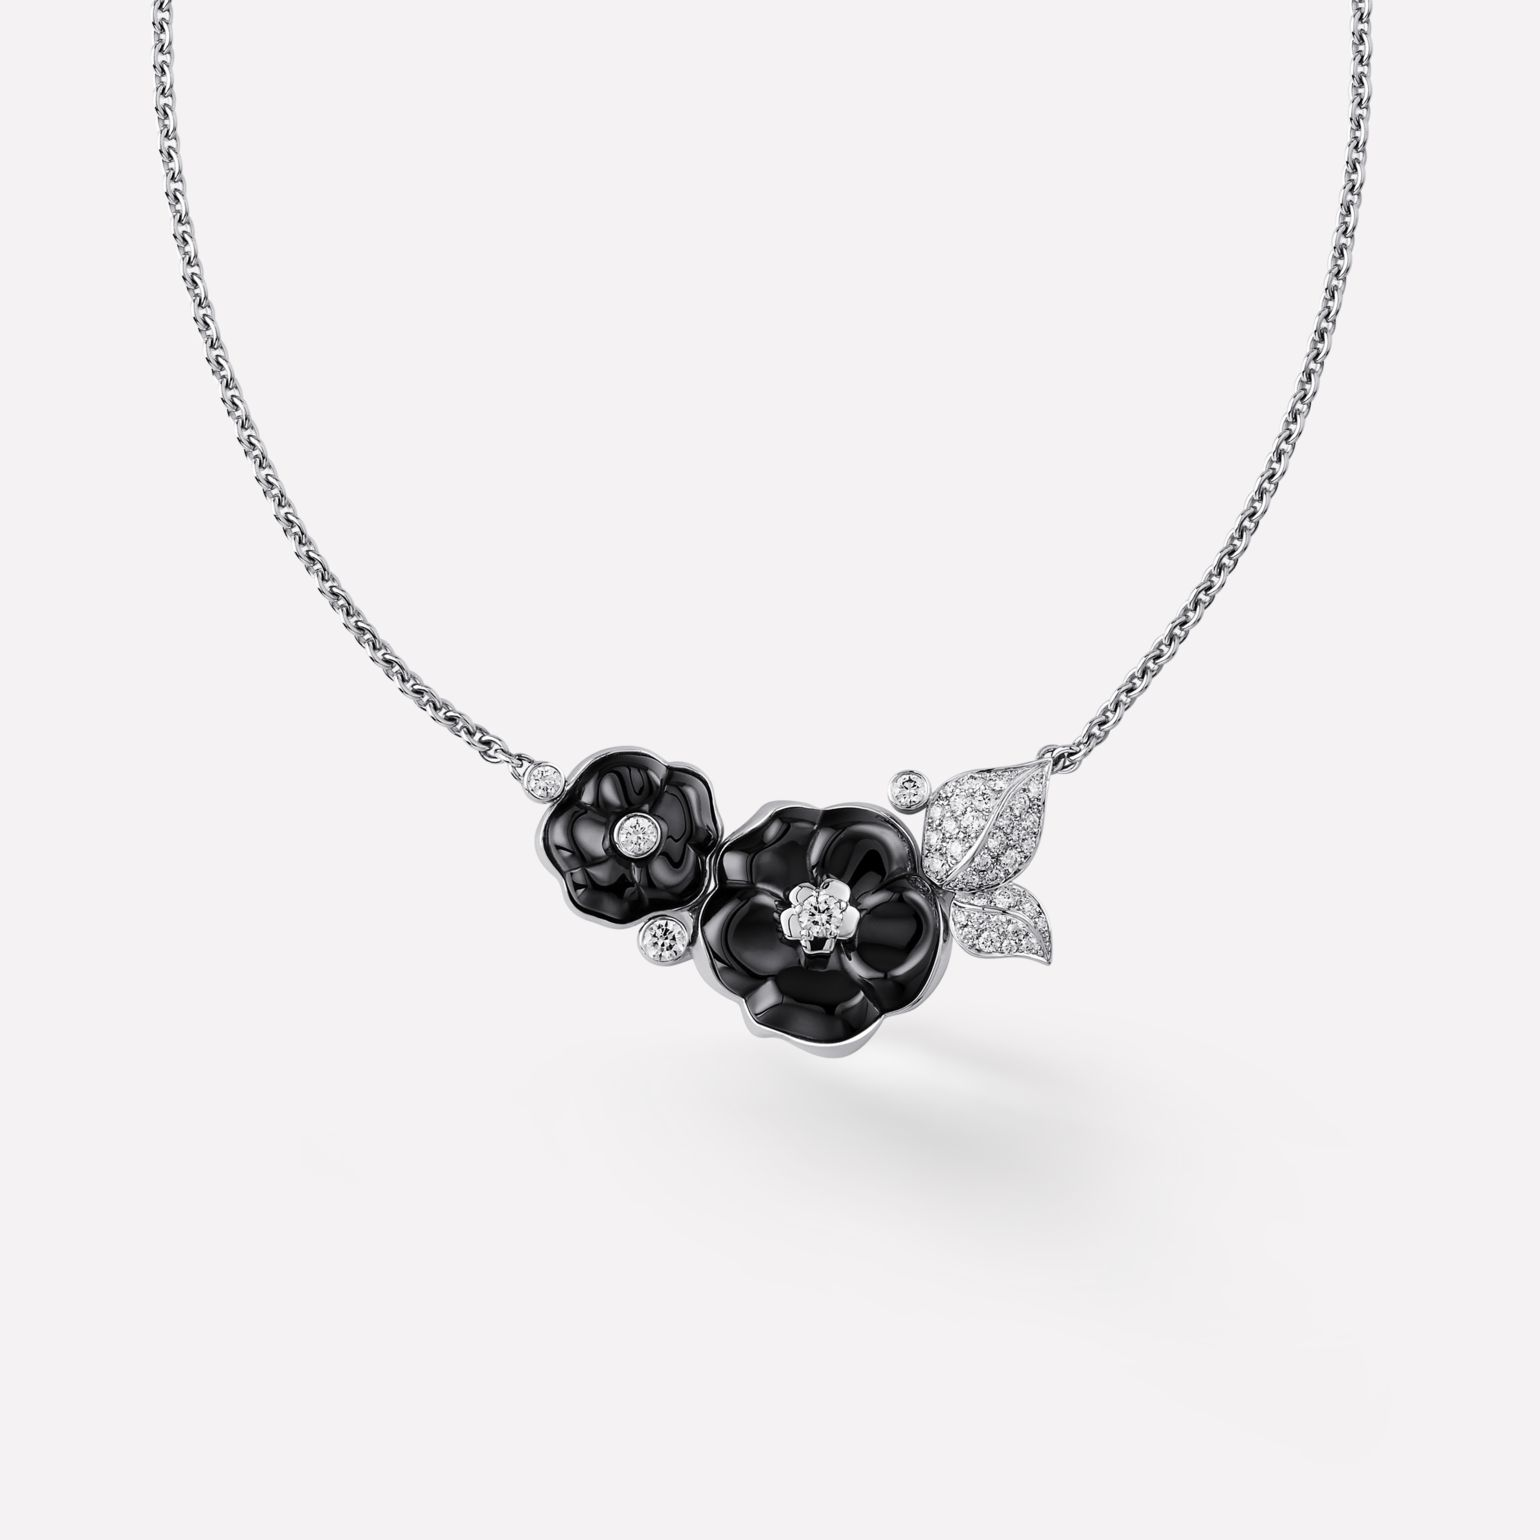 Camélia Necklace Camélia Galbé bouquet necklace in black ceramic, 18K white gold, diamonds and central diamond